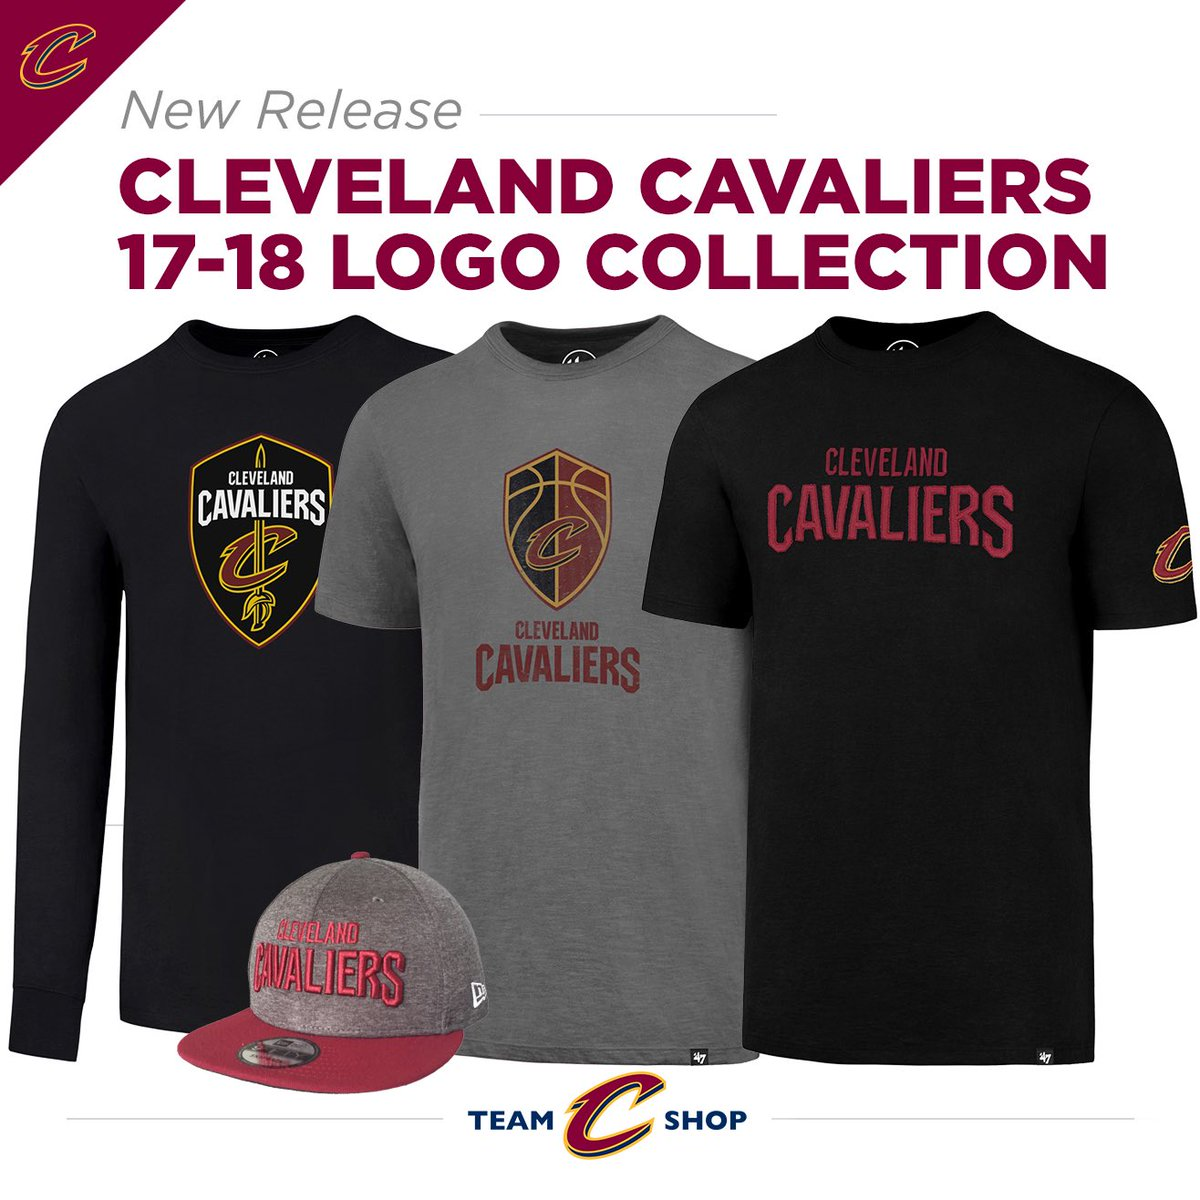 Cavs black t shirt jersey - Livinglegend Wrote The Middle And The Right Shirts Are Not Bad At All I Like How The Font Has A Little More Bite To It Than Block Lettering